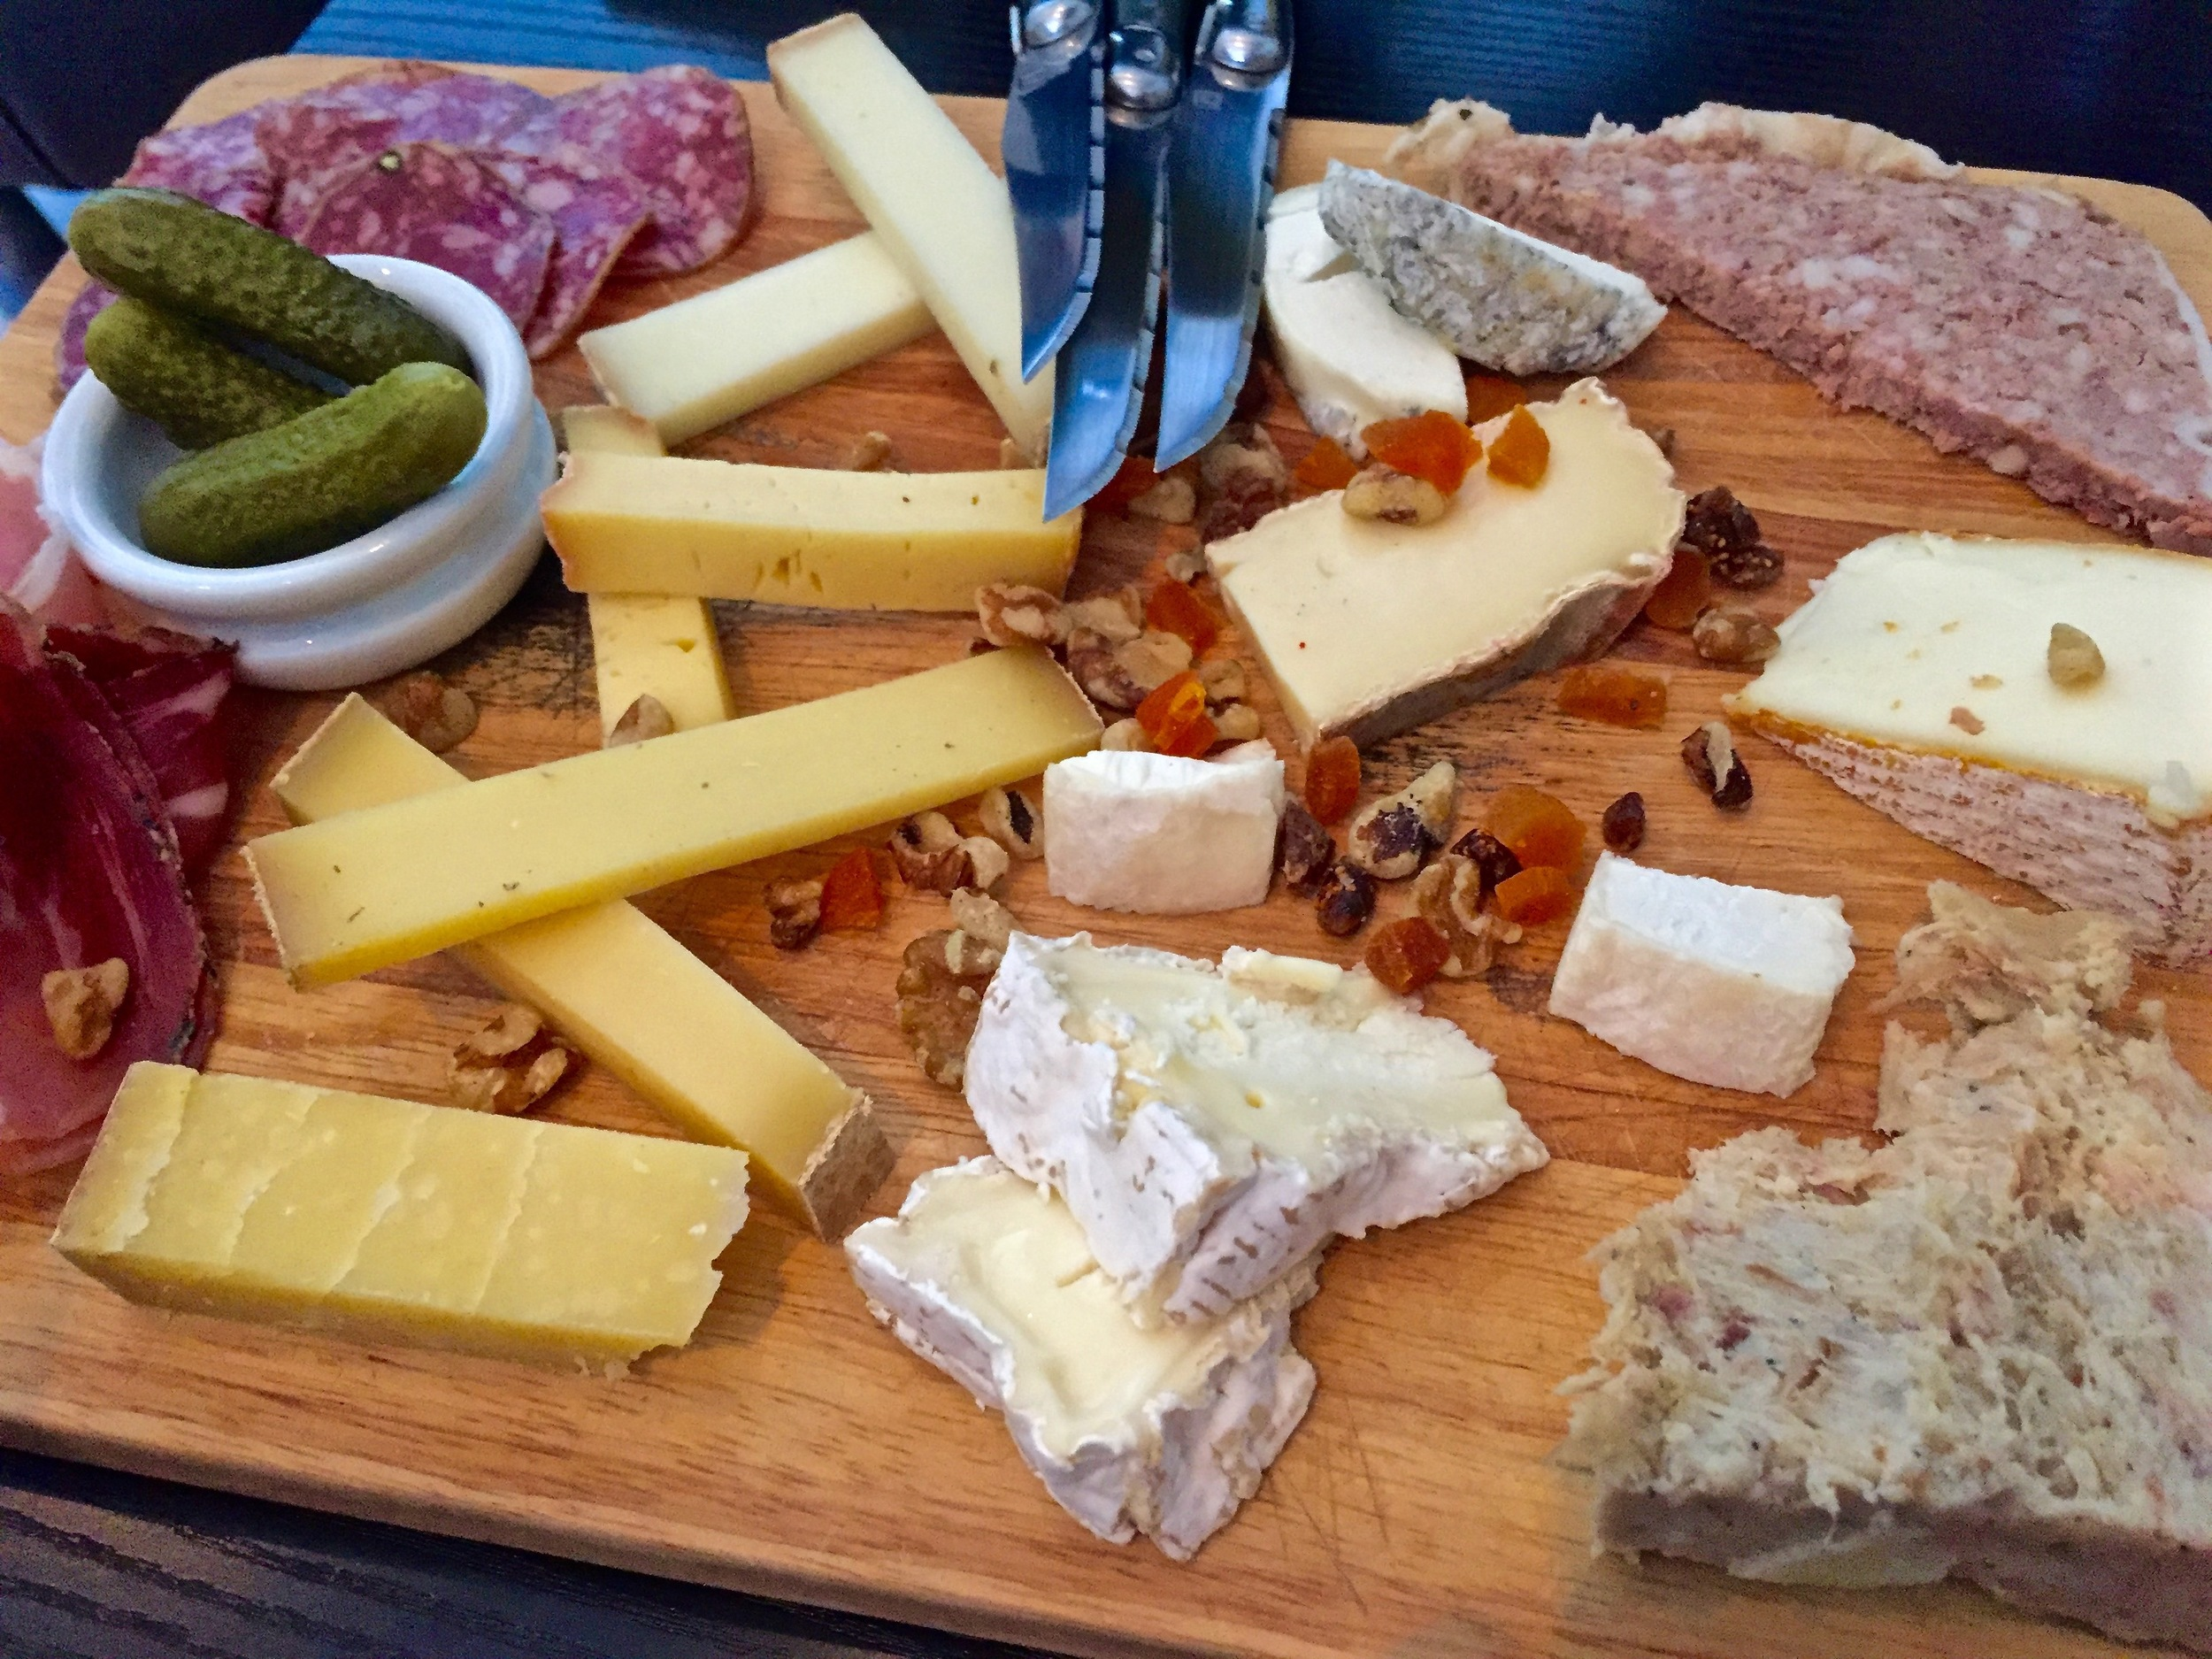 Cheese plate from Saumur.